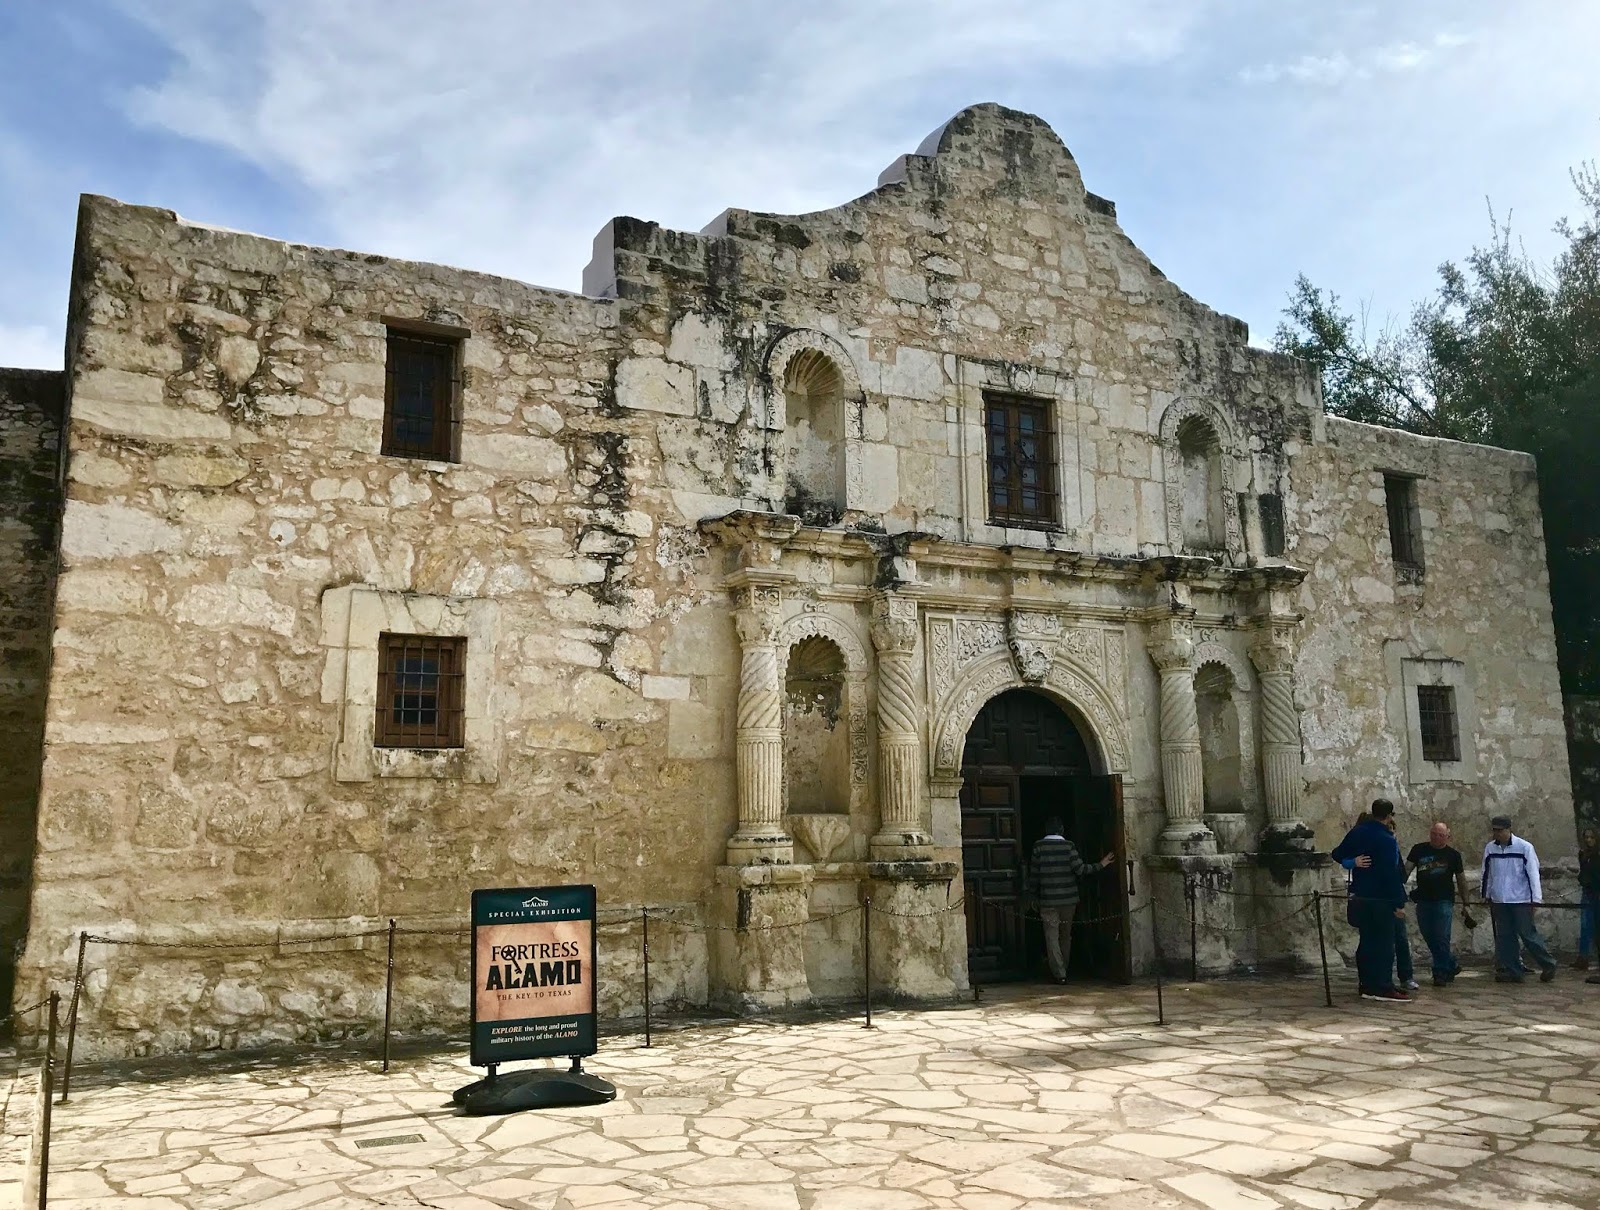 Tallahassee Daily Photo: Remember The Alamo